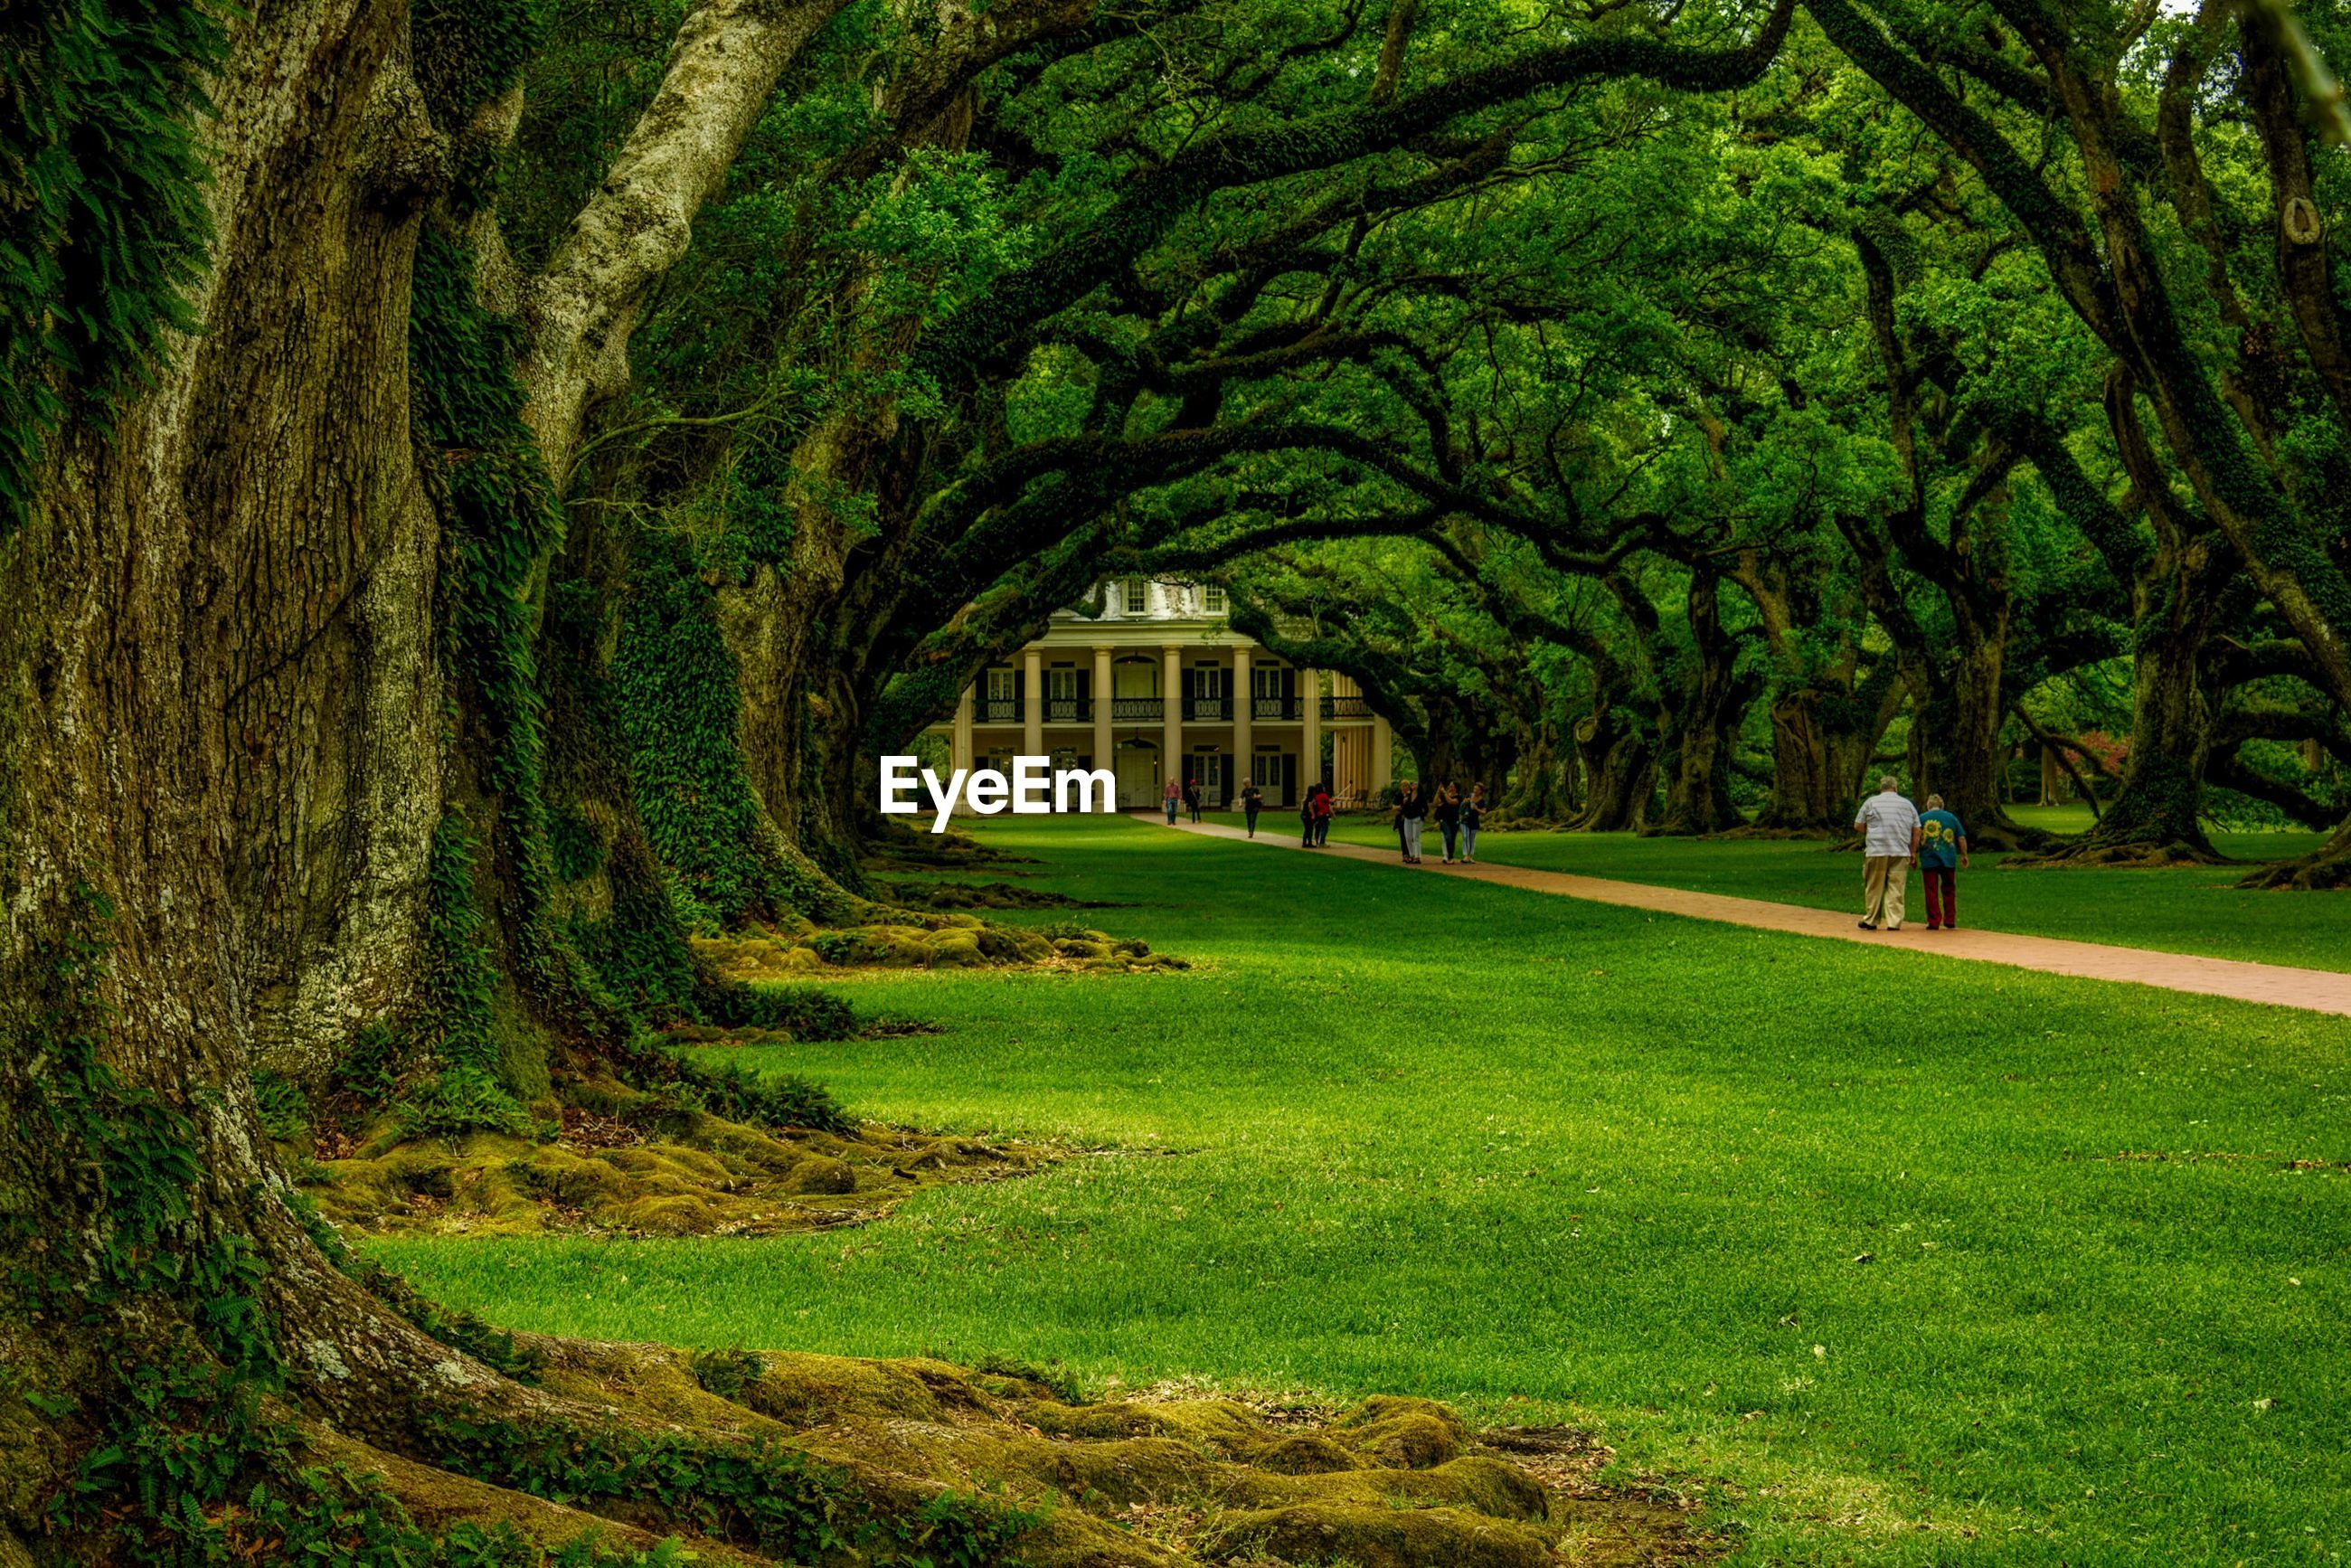 grass, tree, green color, growth, built structure, grassy, architecture, tranquility, field, nature, tree trunk, lawn, building exterior, tranquil scene, landscape, park - man made space, beauty in nature, grassland, day, green